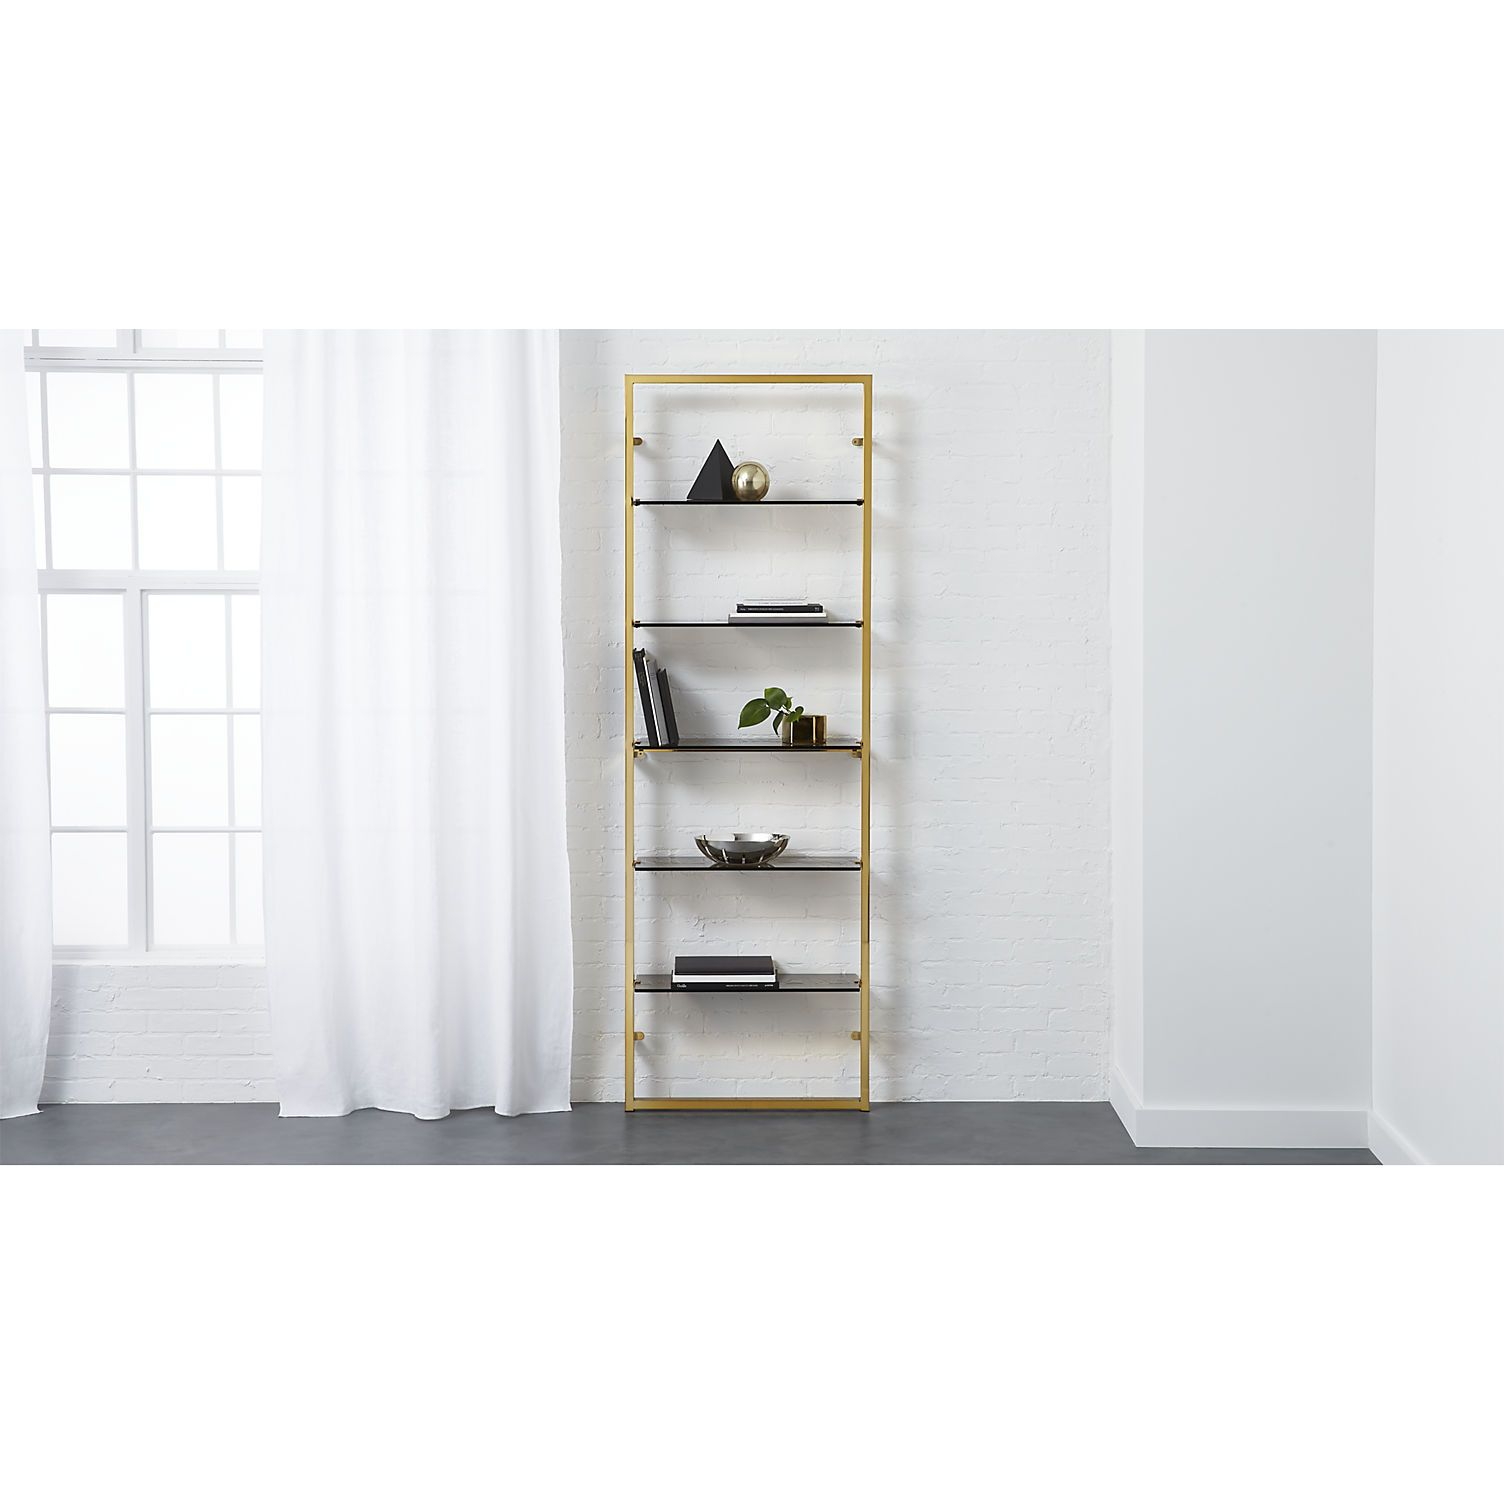 "Tesso Bronze 84"""" Wall Mounted Bookcase"